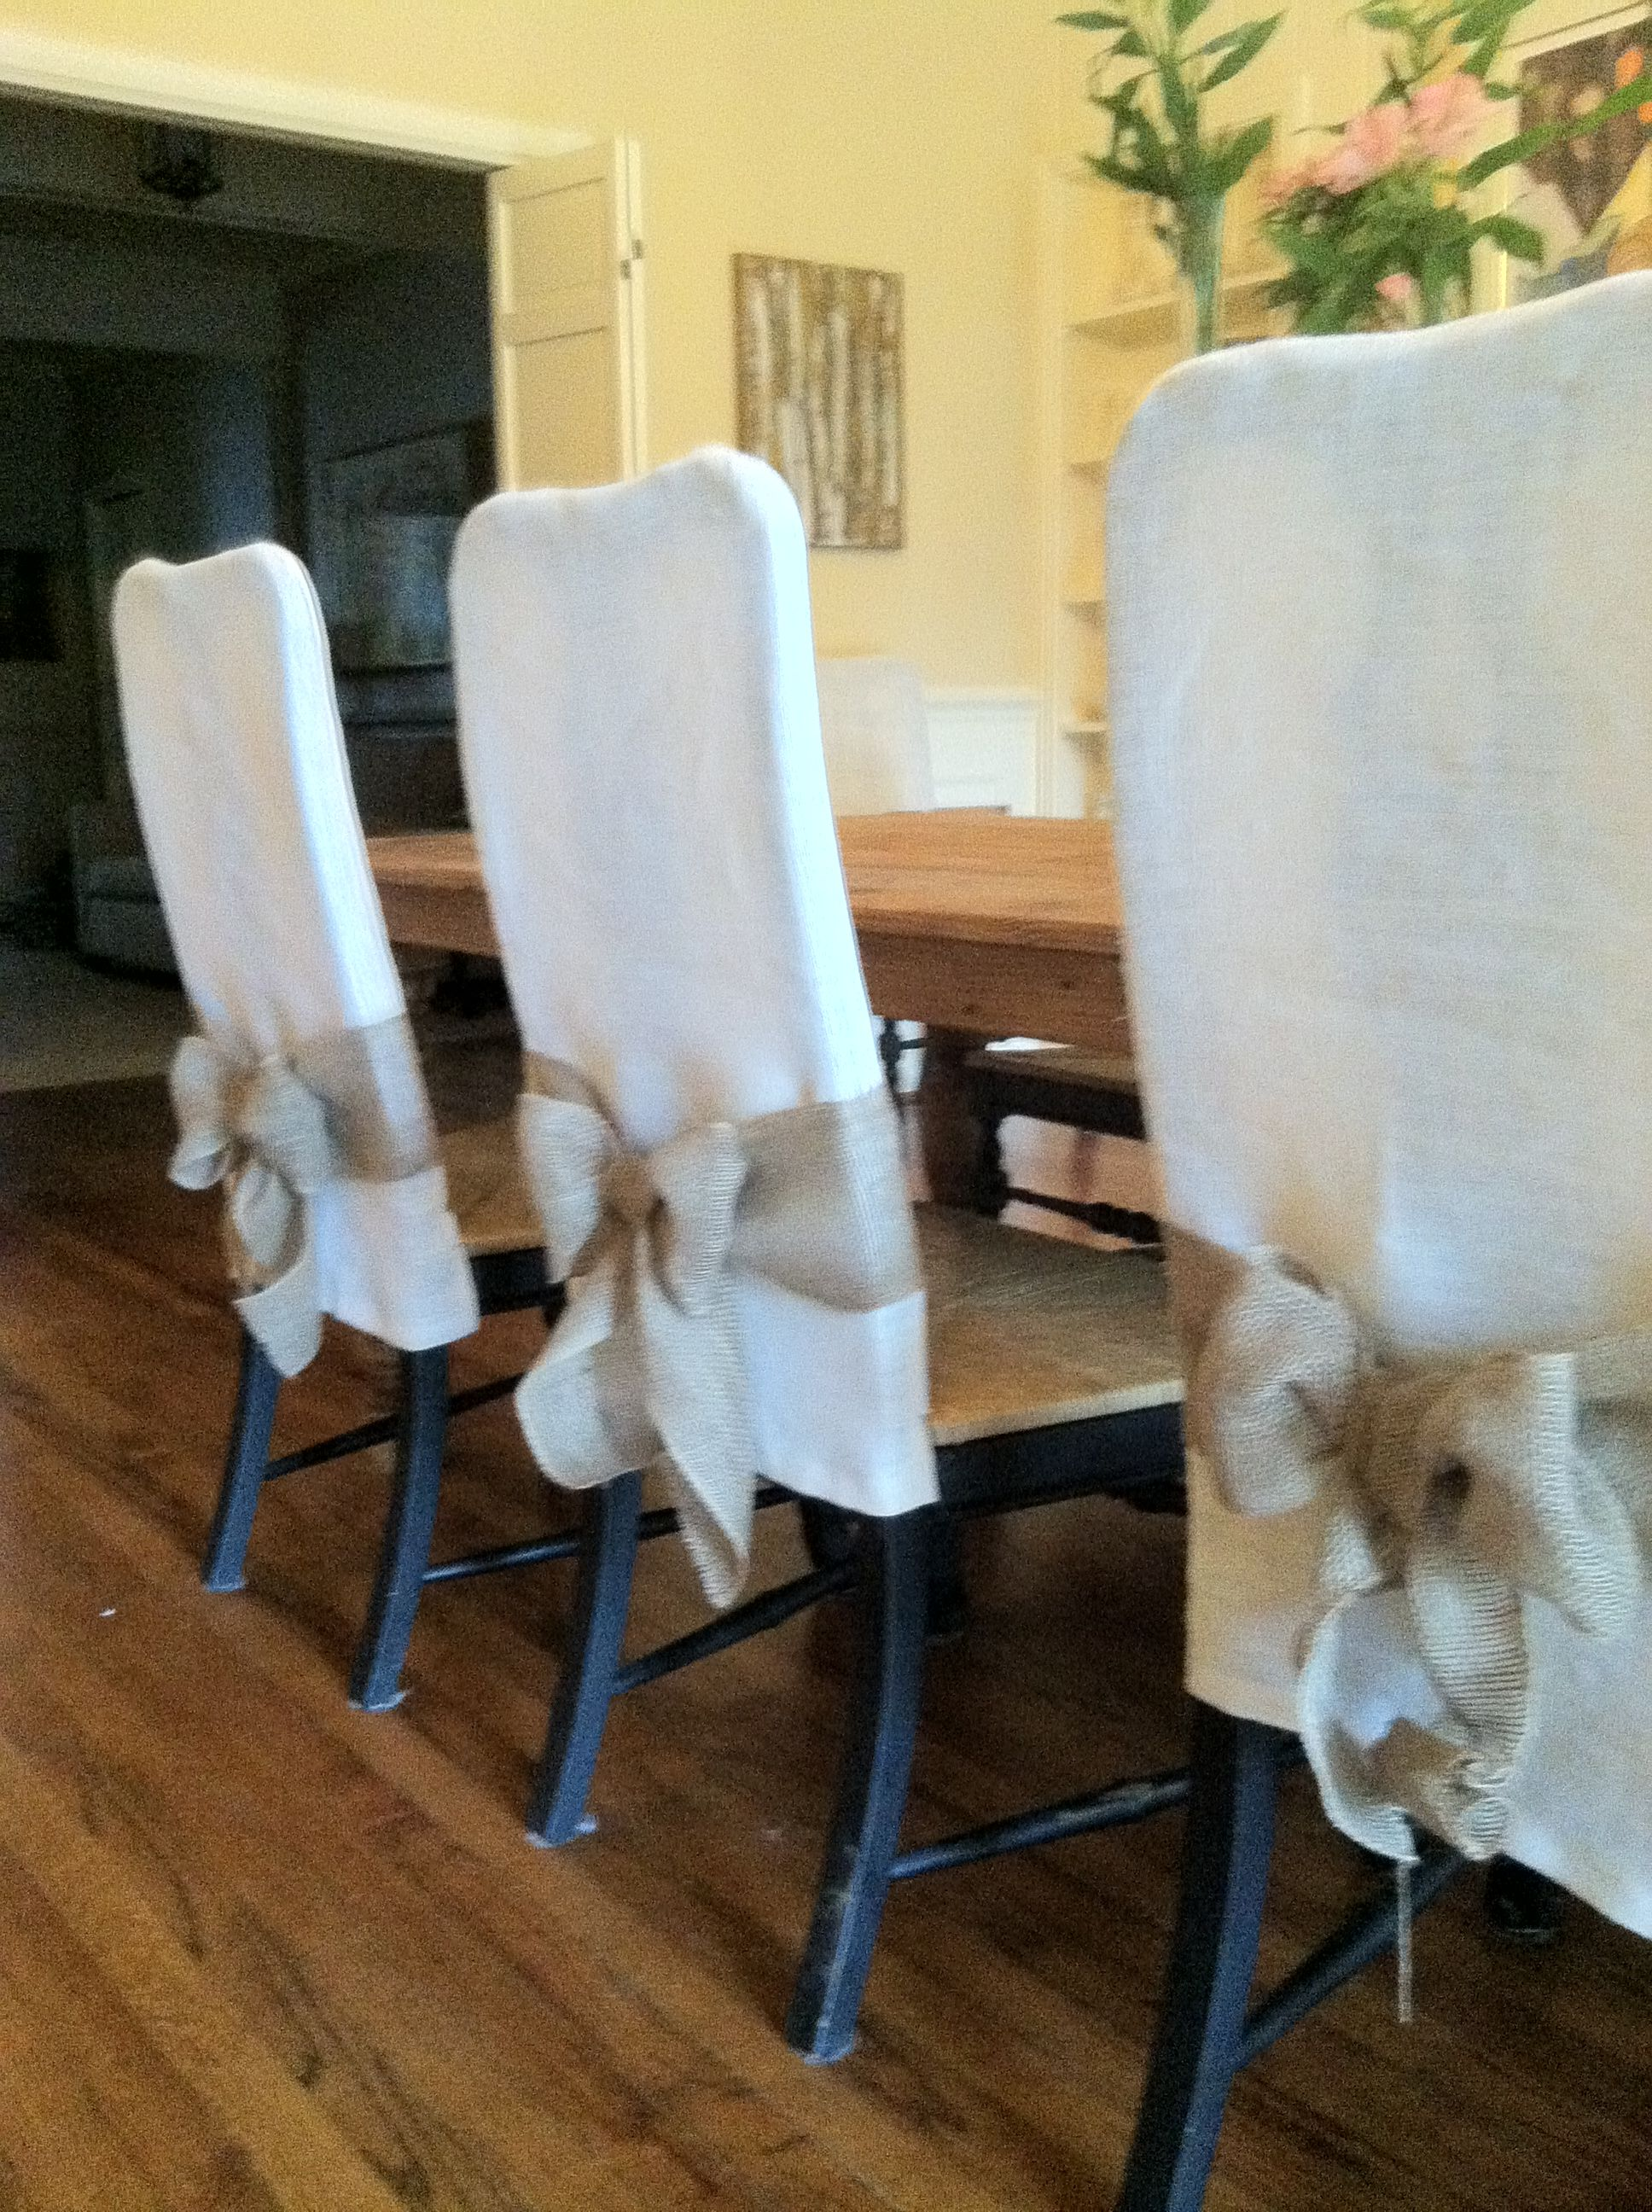 parsons chair cover tutorial plastic chairs with stainless steel legs summer dining slipcovers bridesmaid luncheon